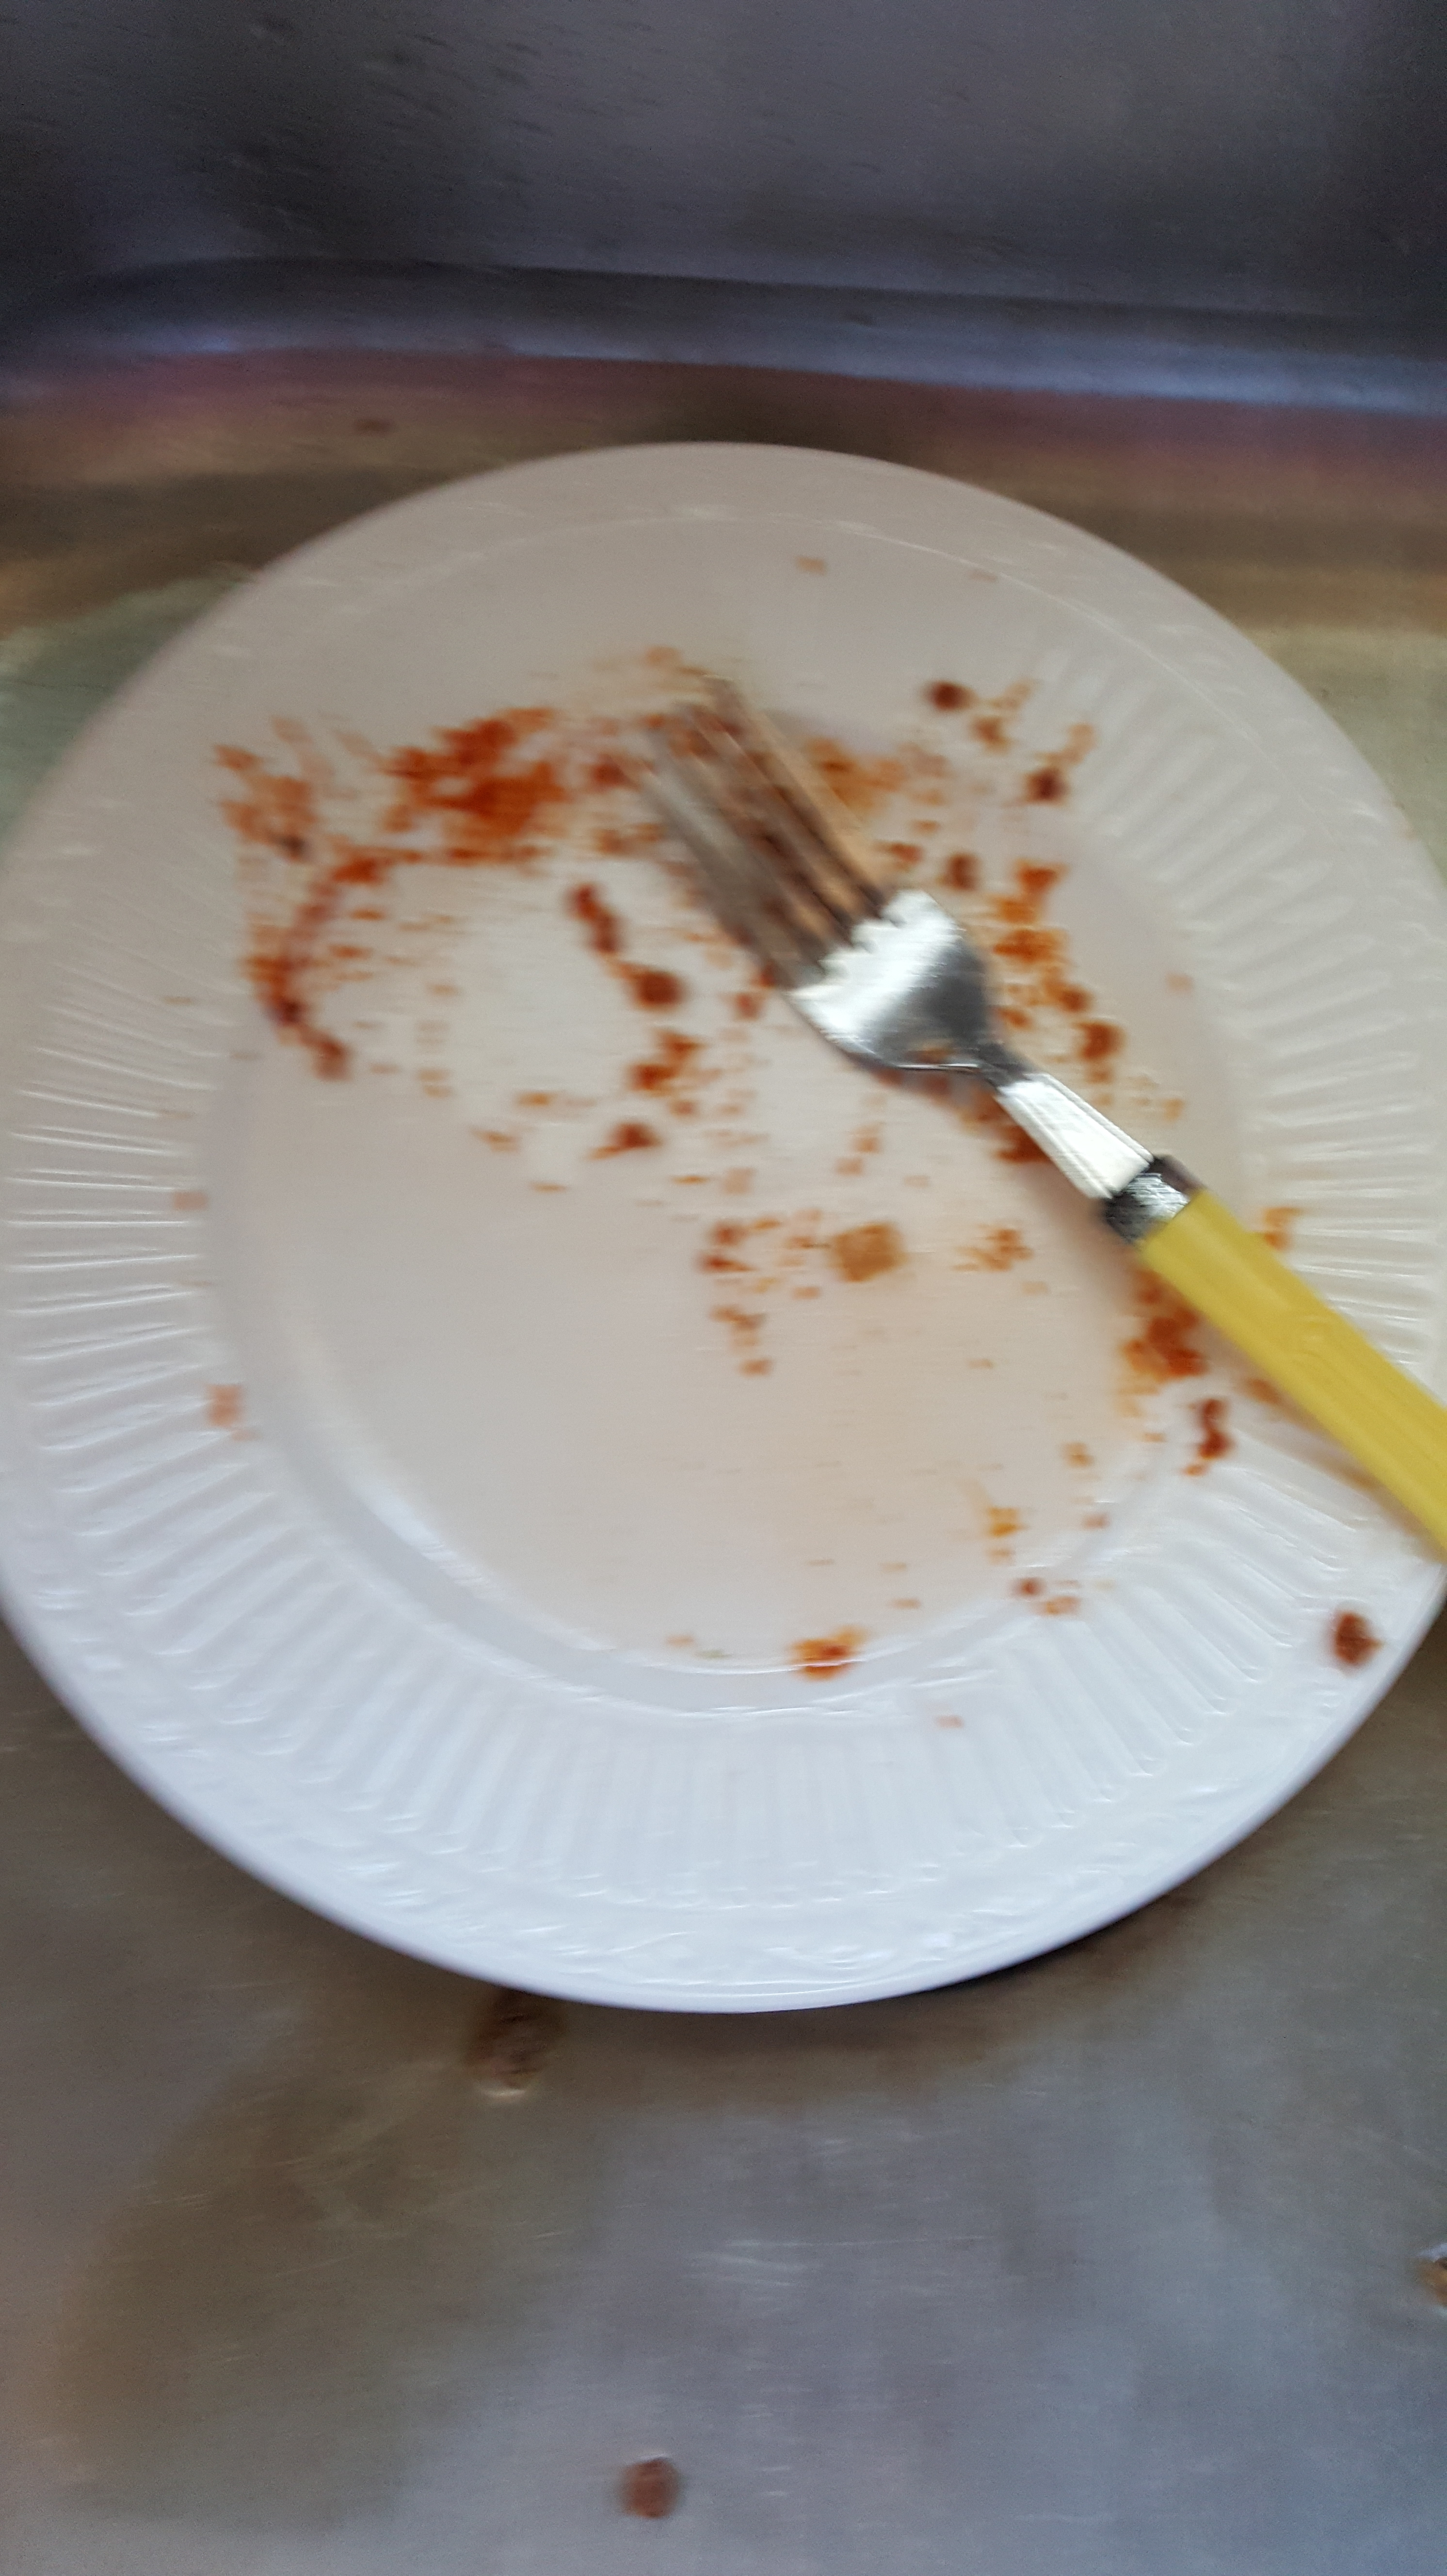 the unrinsed plate